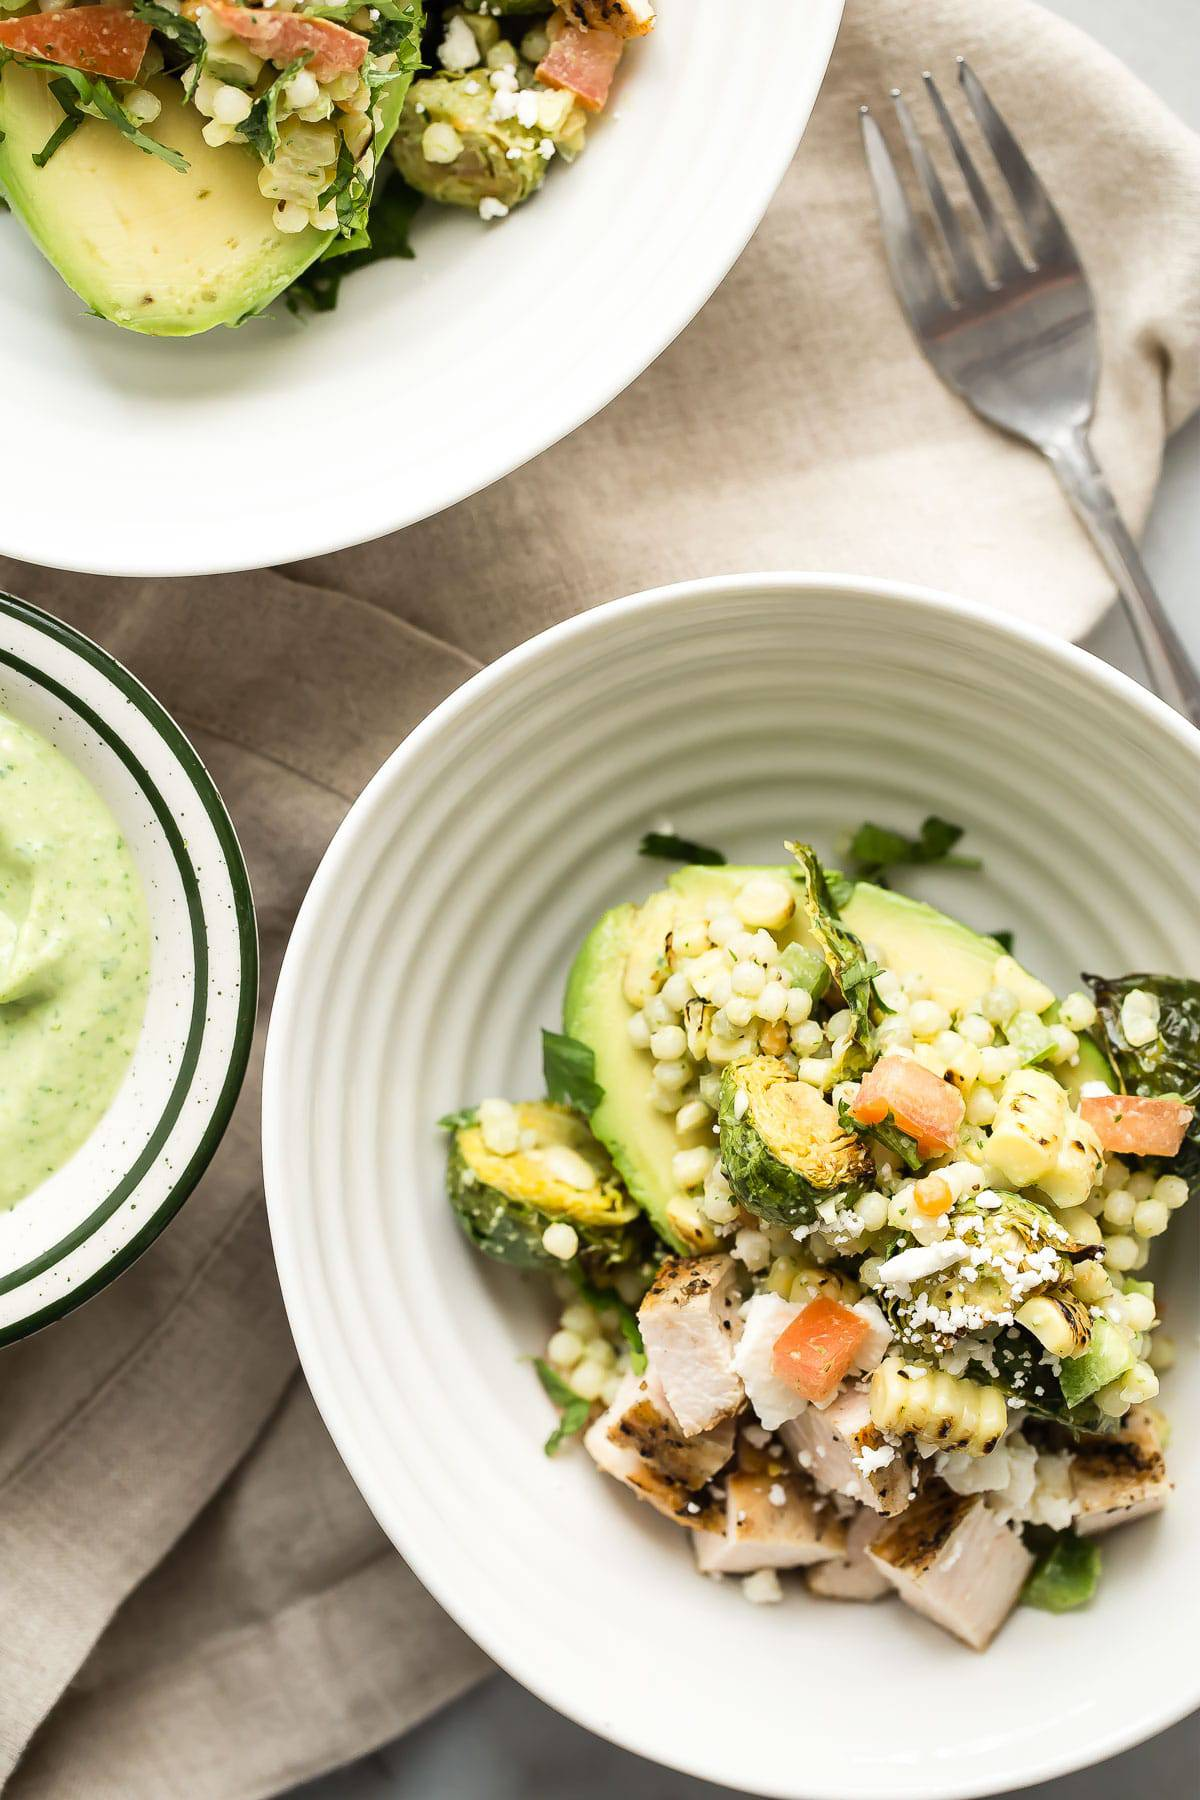 Avocado feta bowl topped with couscous, grilled chicken and charred corn, the perfect healthy lunch.